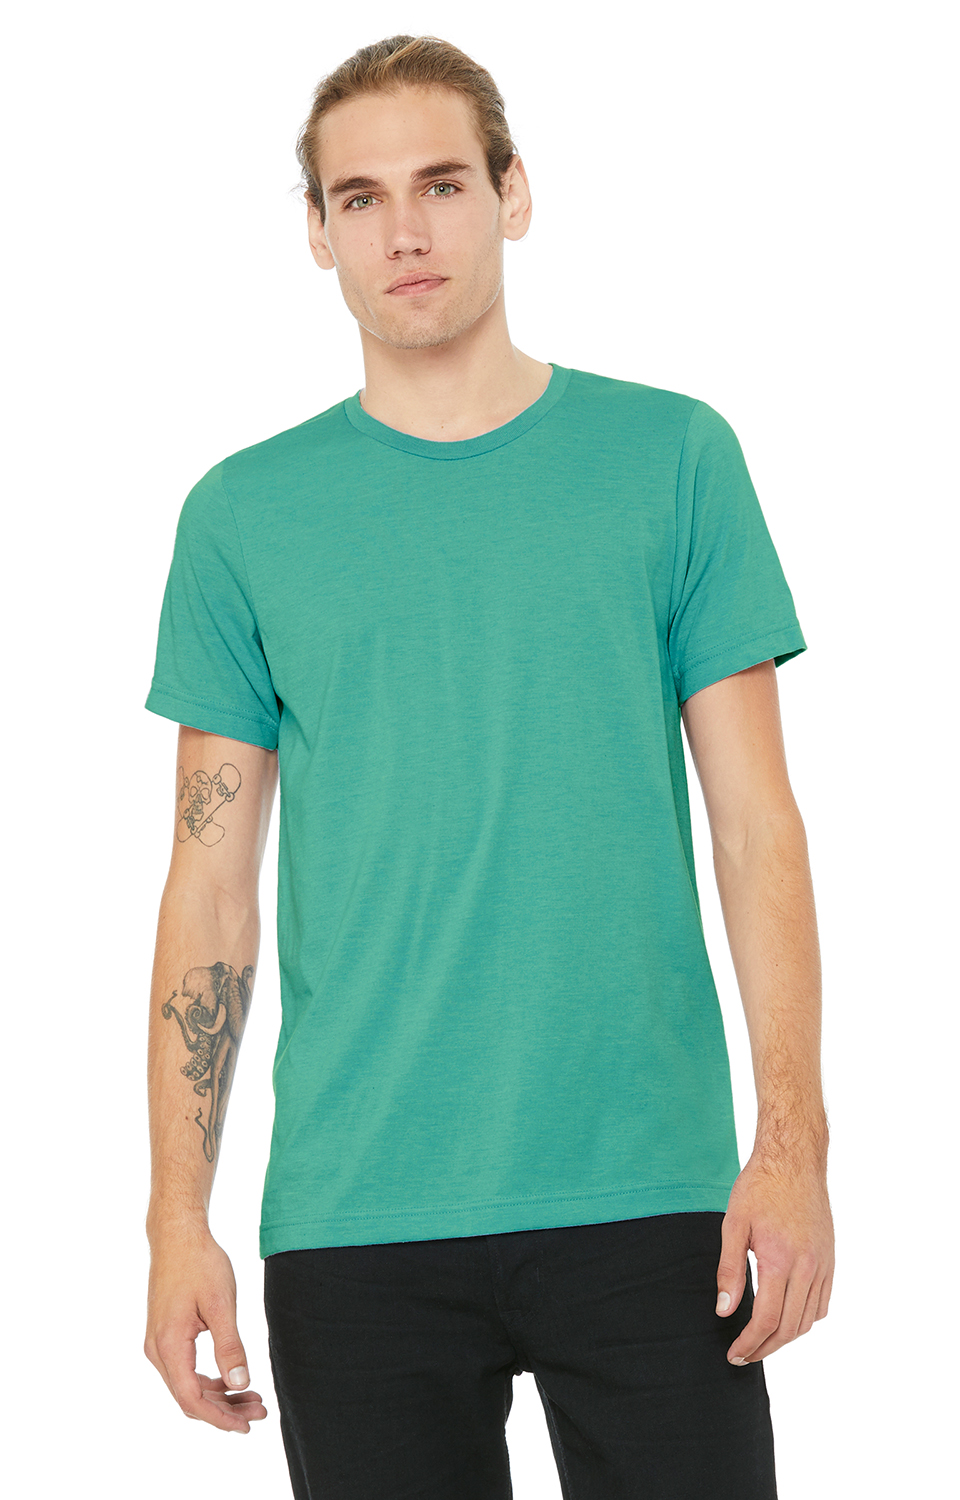 Bella Canvas TEAL Soft Style Unisex Jersey T-Shirt